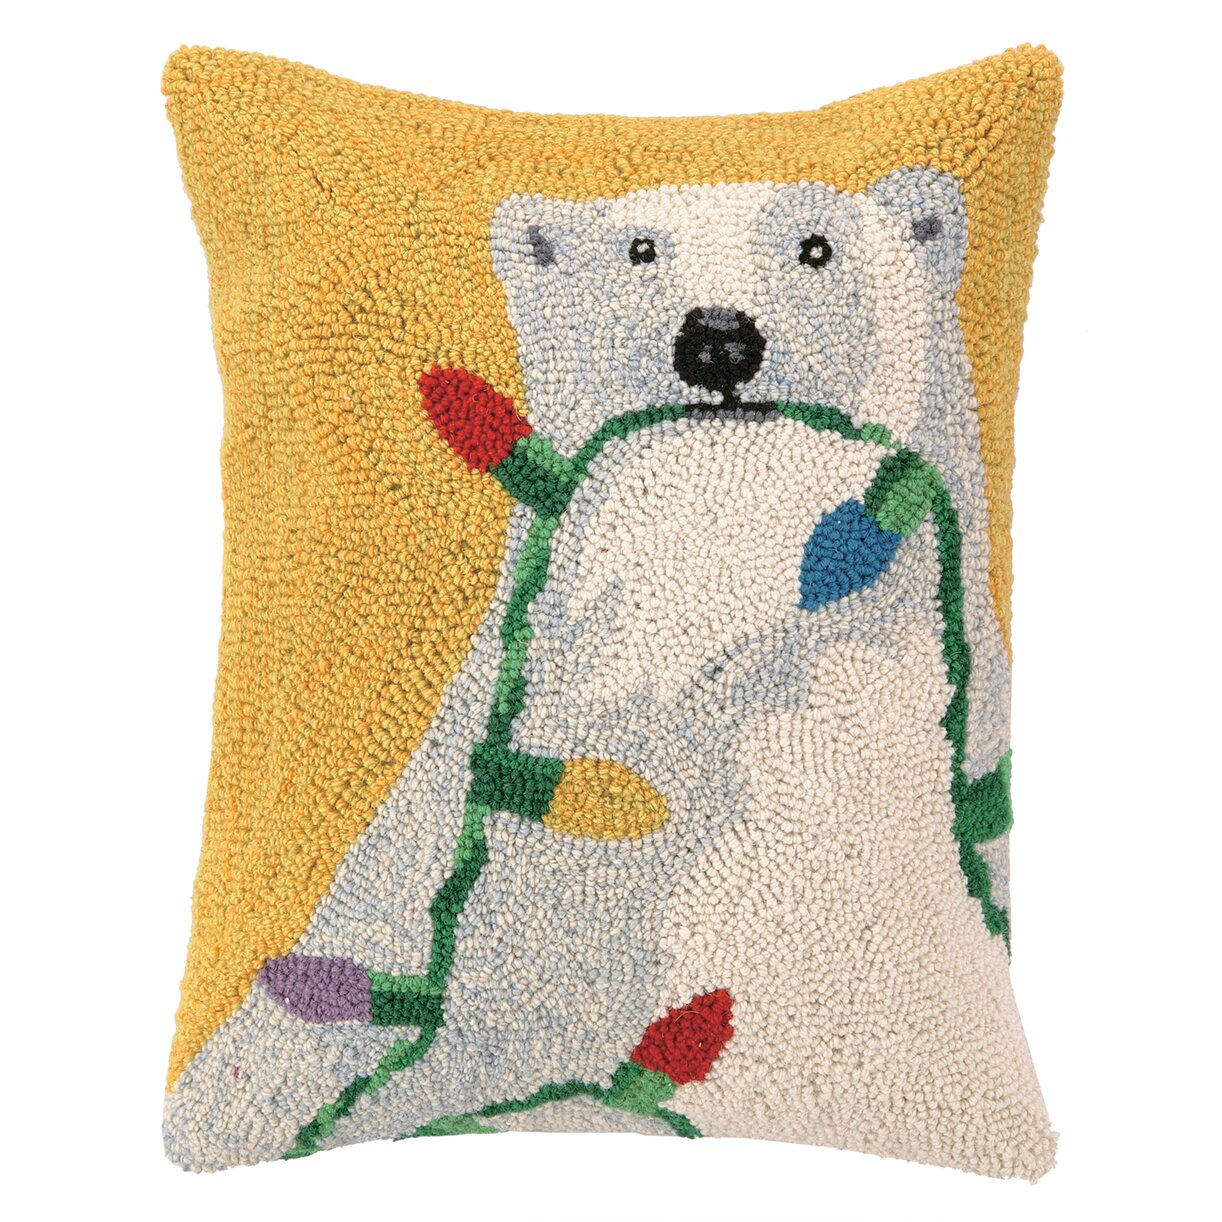 Polar Bear Throw Pillow : Peking Handicraft Polar Bear Lights Hook Wool Throw Pillow & Reviews Wayfair